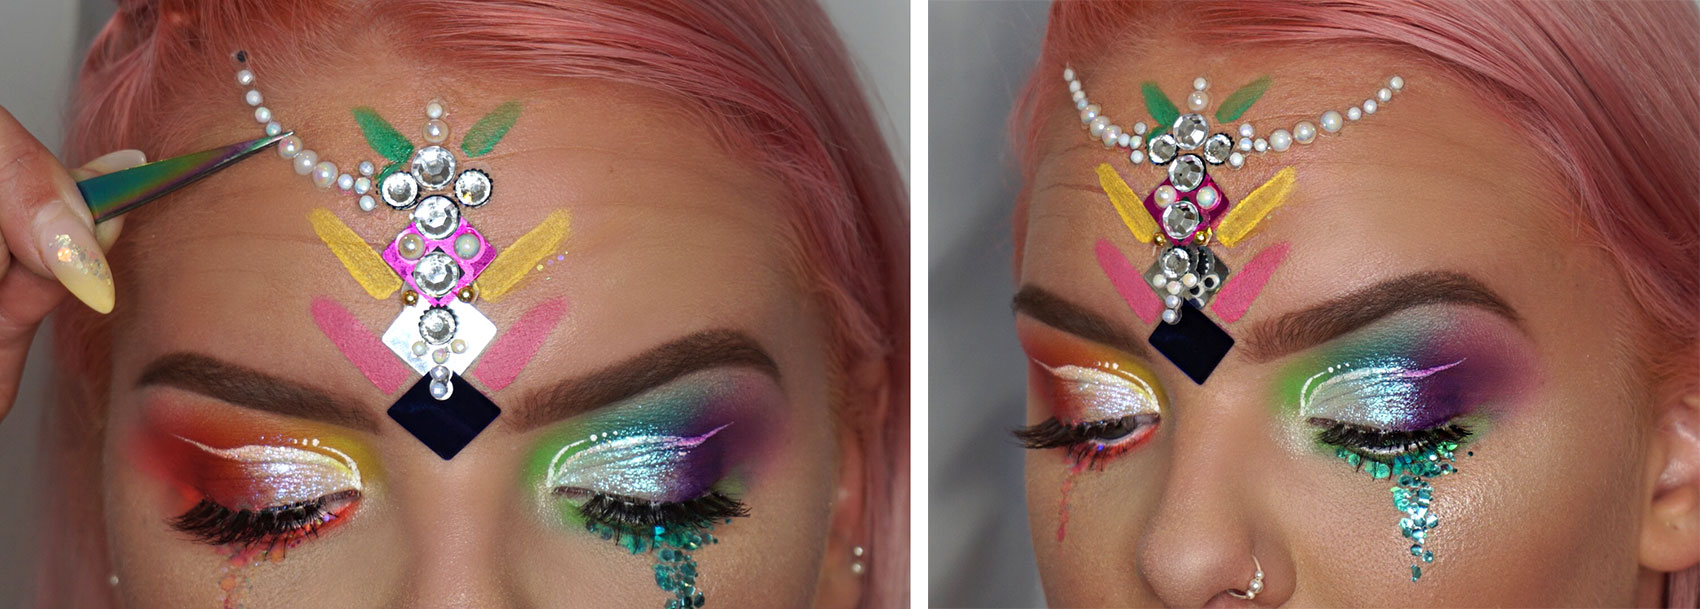 HOW-TO-DO-PRIDE-MAKEUP-5